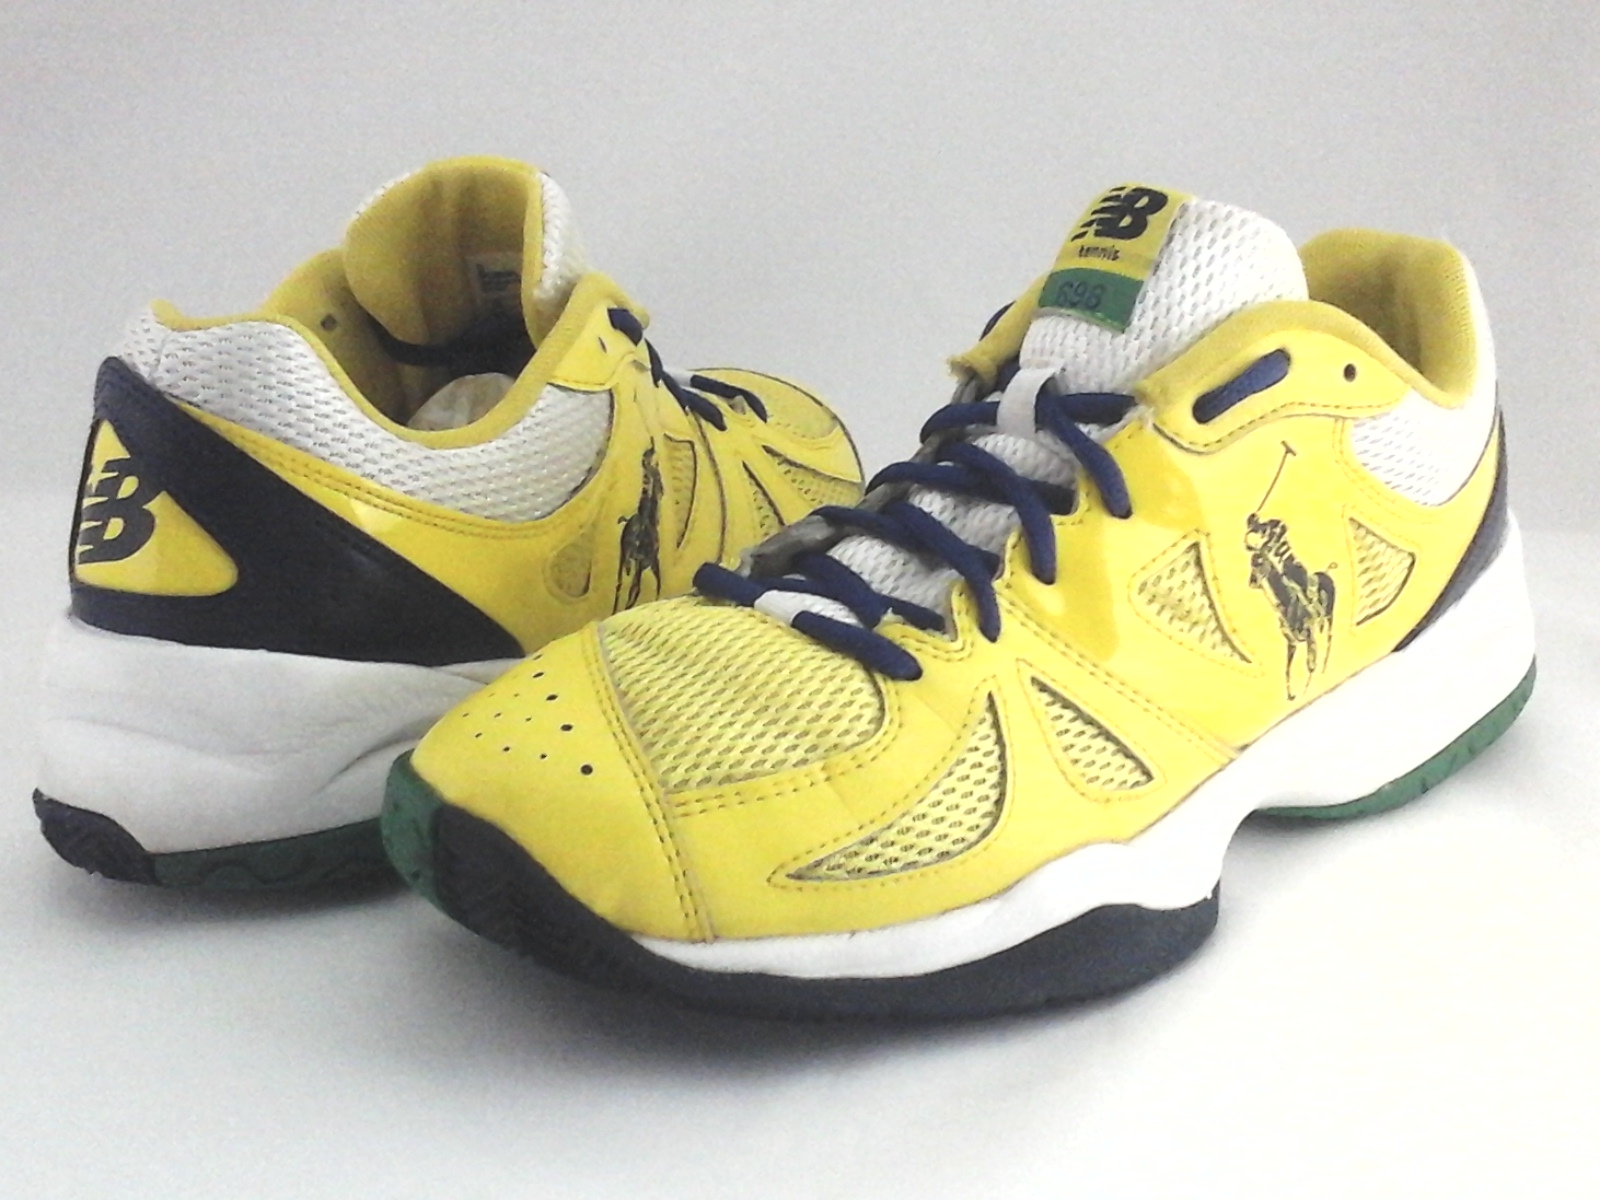 meet eb7e6 5a089 Details about POLO Ralph Lauren New Balance Shoes 696 Yellow NB MC696PL Sneakers  Mens US 10 44